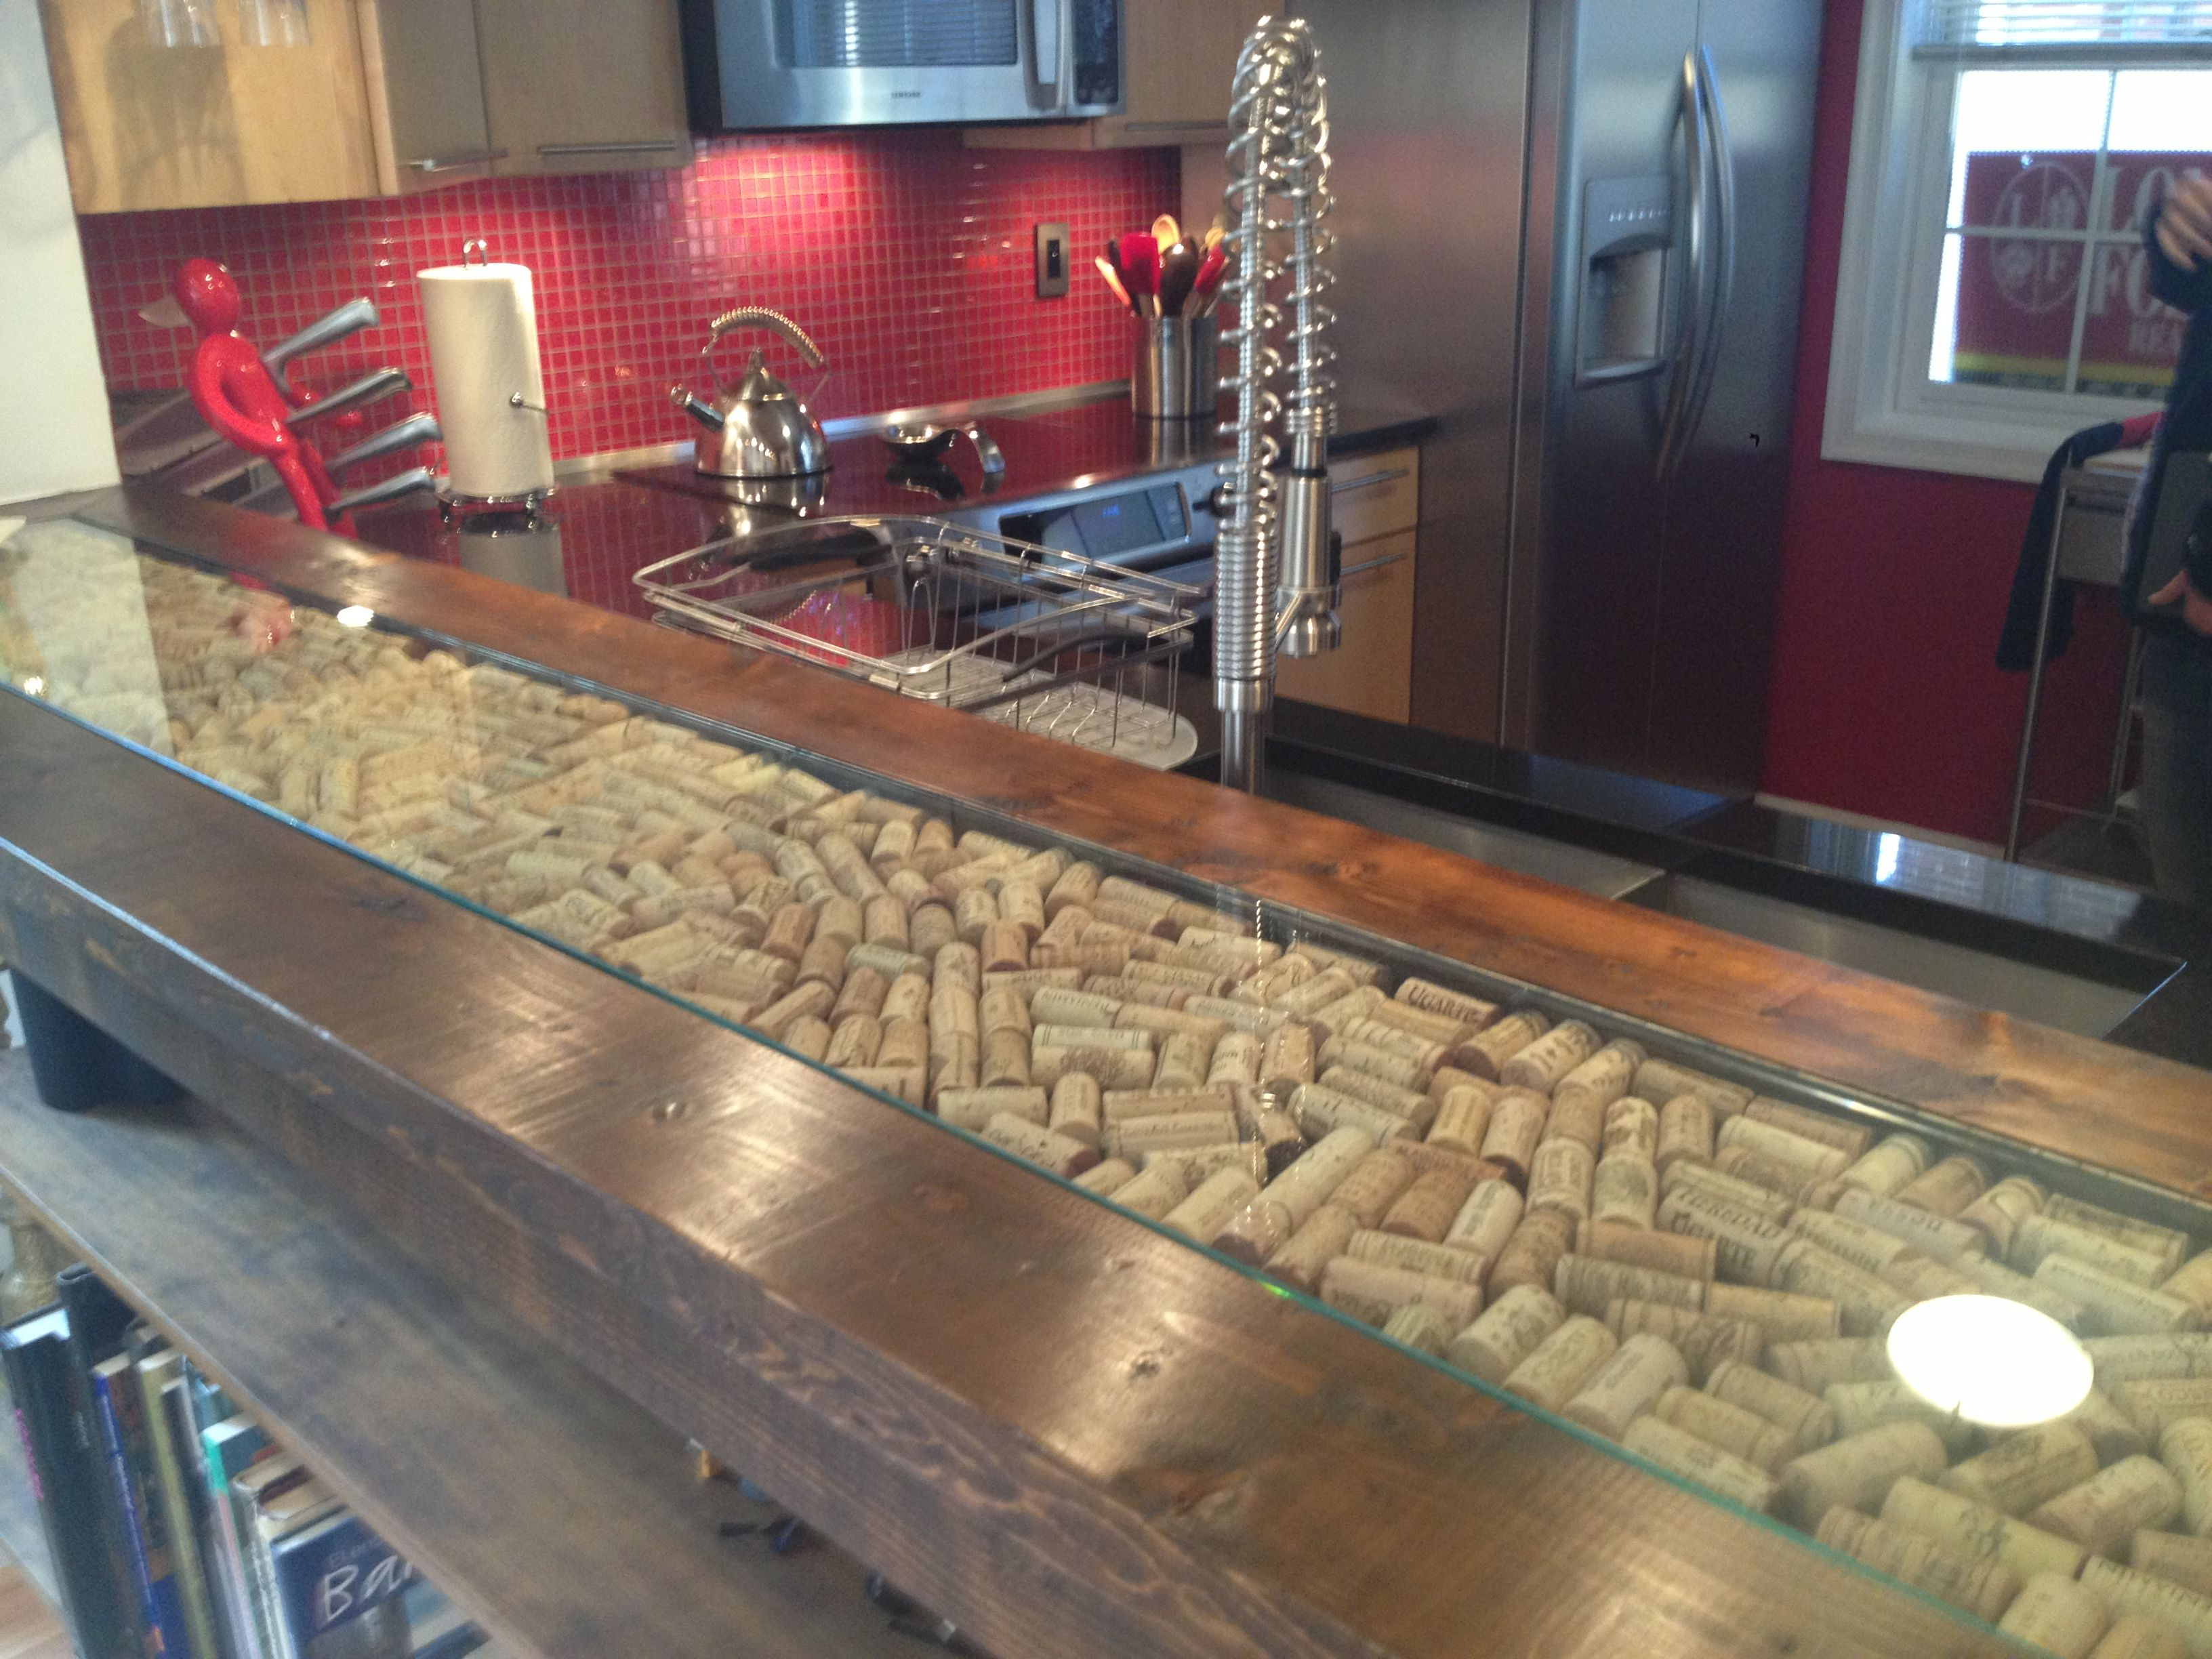 Bar Counter Top With Wine Cork Inlay Bouchons De Liege Decoration Restaurant Renovation Interieur